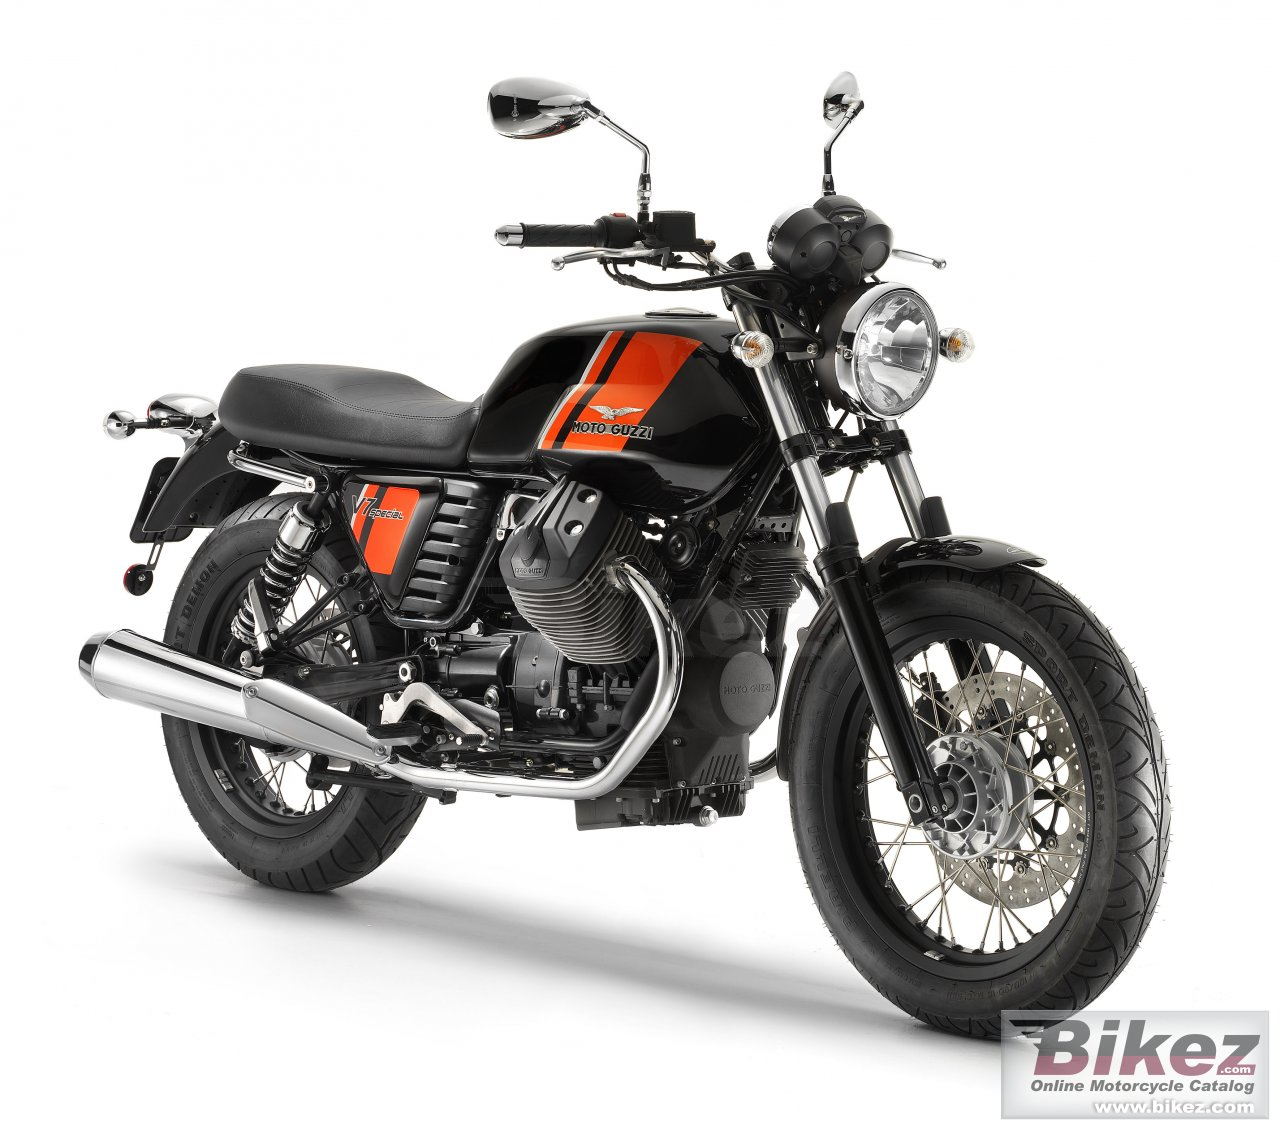 Big Moto Guzzi v7 special picture and wallpaper from Bikez.com